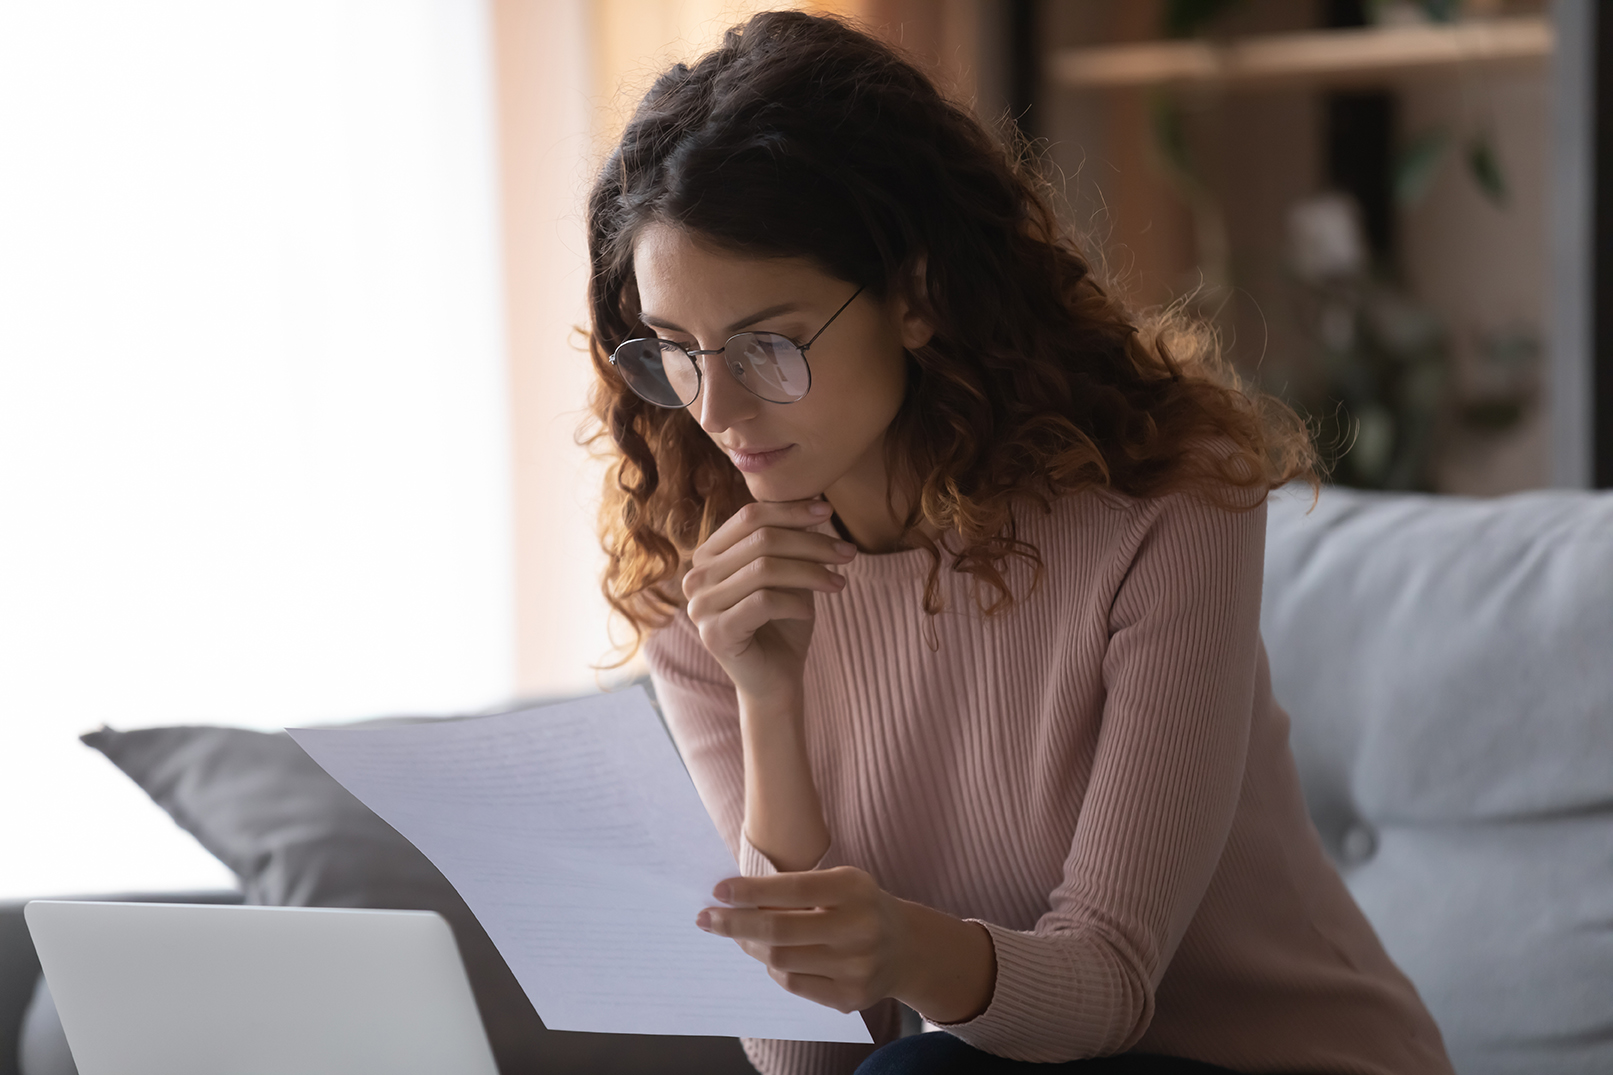 Focused woman wearing glasses reading document holding paper sheet close up, thoughtful businesswoman freelancer working with correspondence, checking financial documents, contract or notice at home